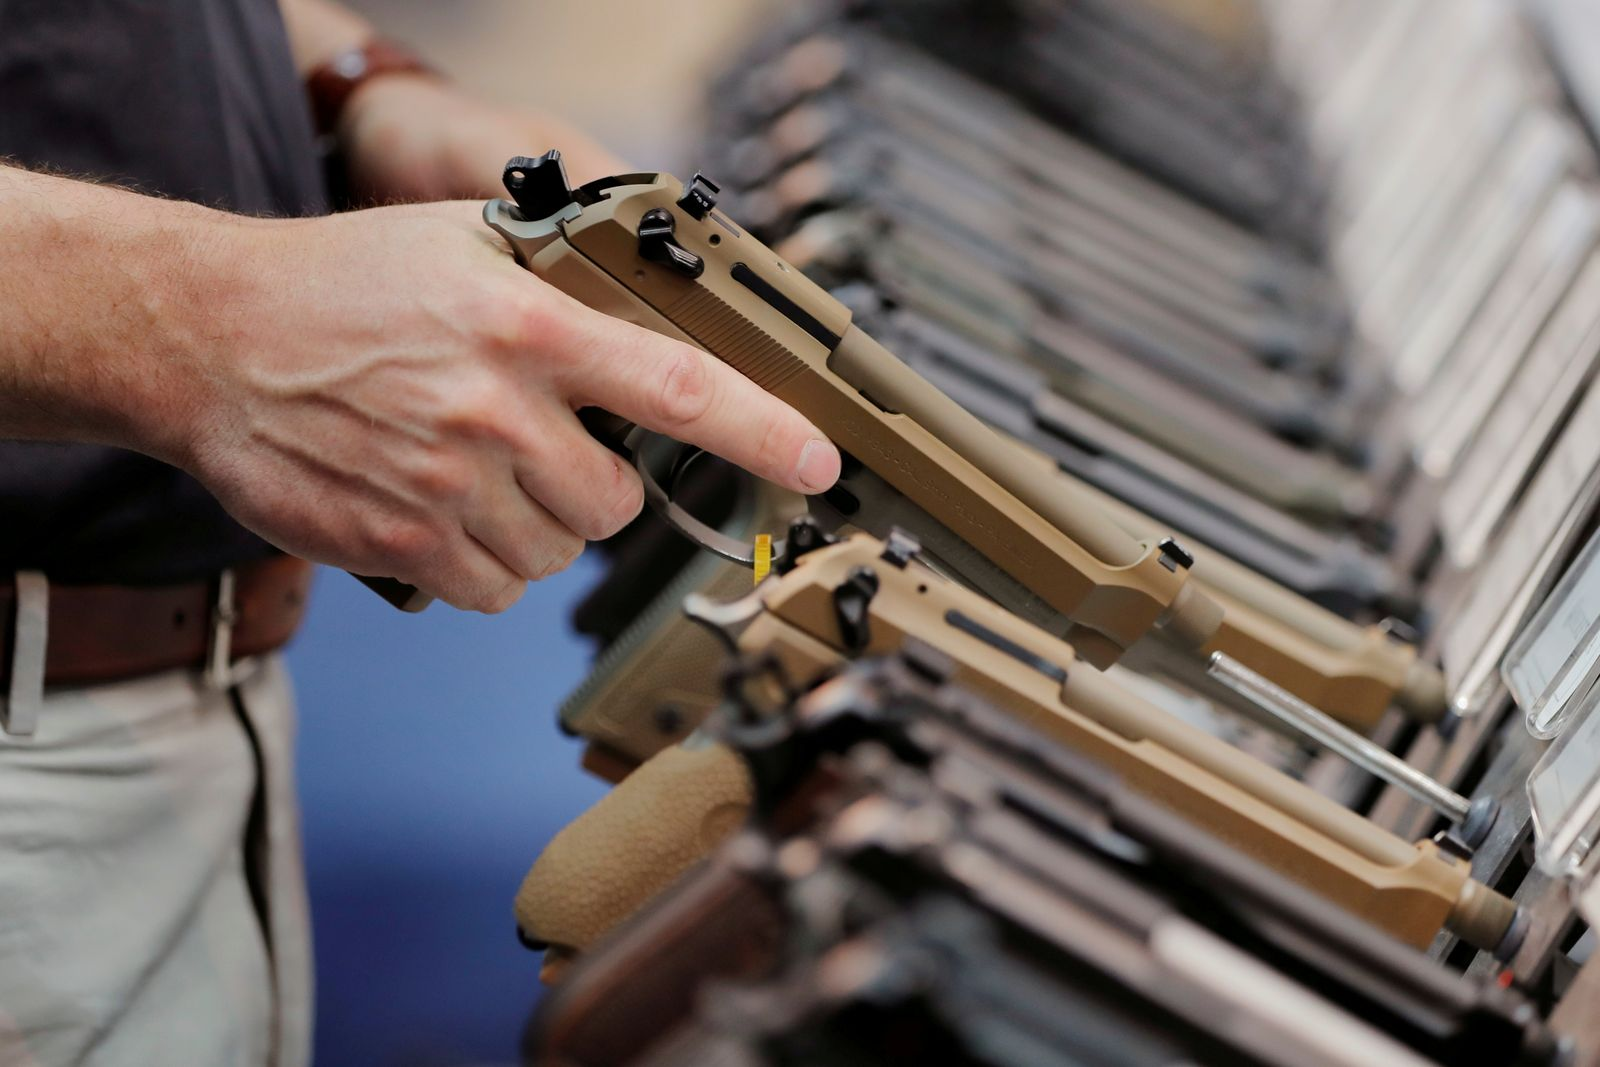 FILE PHOTO: A man inspects a handgun inside of the Beretta booth during the National Rifle Association (NRA) annual meeting in Indianapolis, Indiana